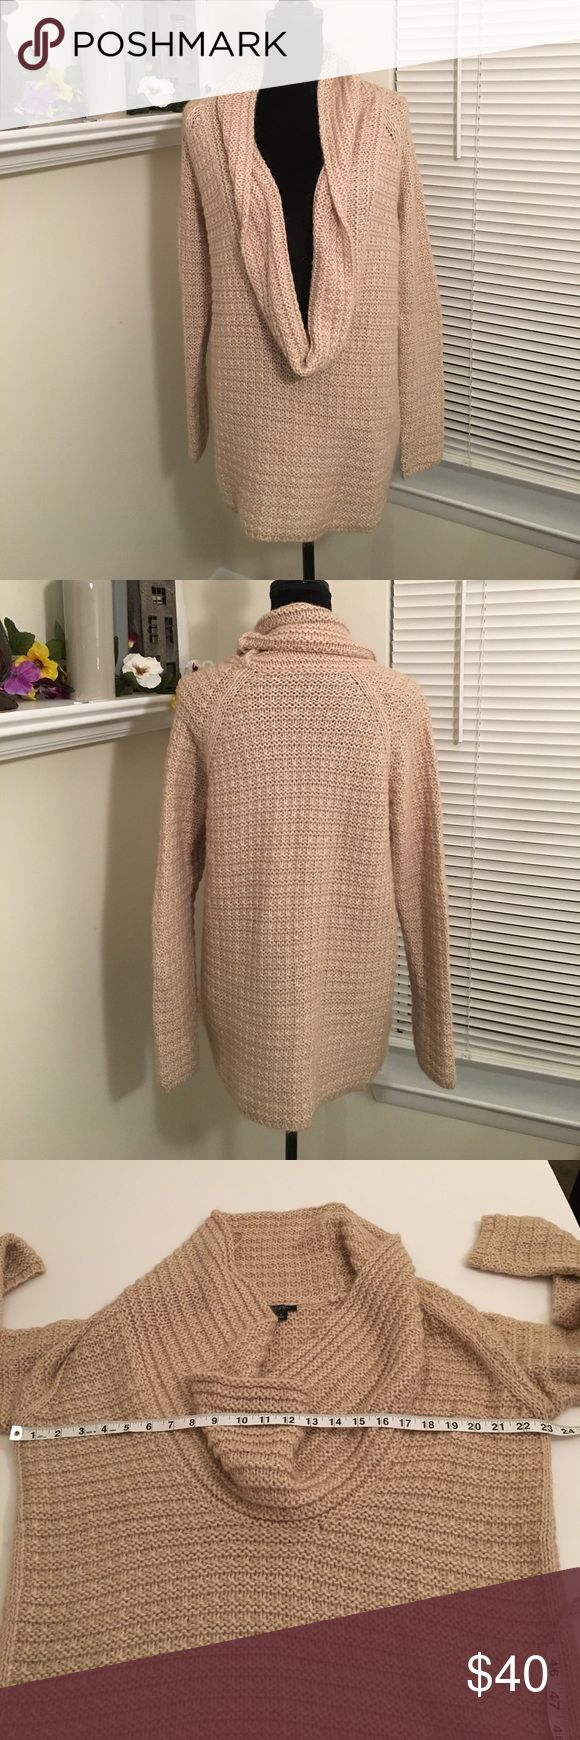 Ann Taylor cowl neck sweater Tan thick stitch deep cowl neck sweater from Ann Taylor. Long sleeves and longer length- perfect for leggings or skinny jeans. Sweater does contain mohair. Ann Taylor Sweaters Cowl & Turtlenecks